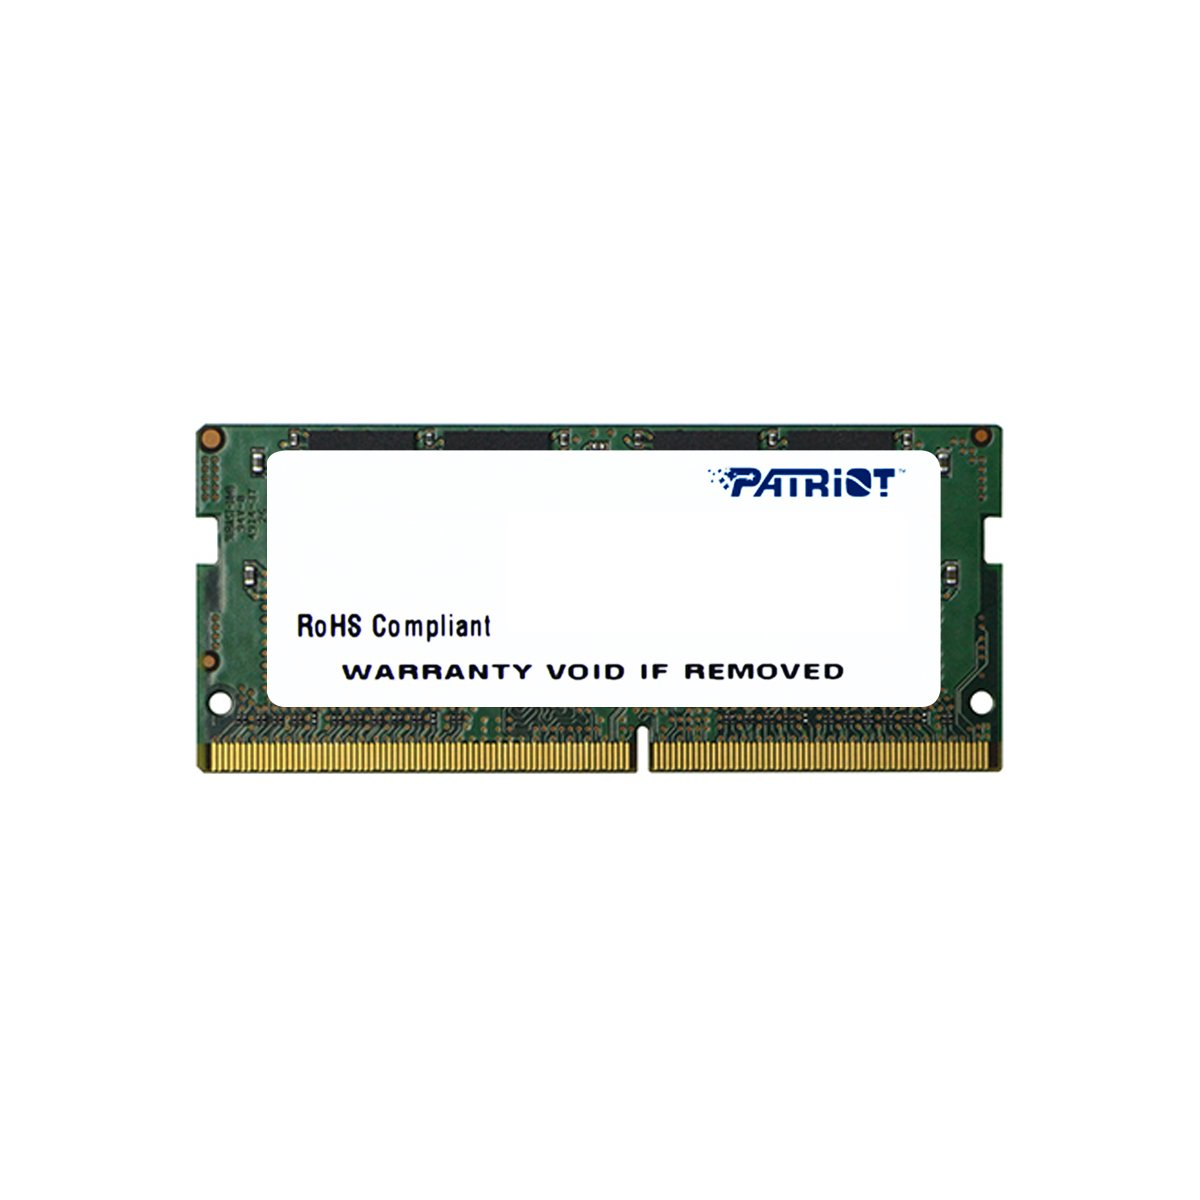 Patriot Memory Signature Line DDR4 16GB (1x16GB) SODIMM Frequency: 2400MHz (PC4-19200) 1.2 Volt - PSD416G24002S